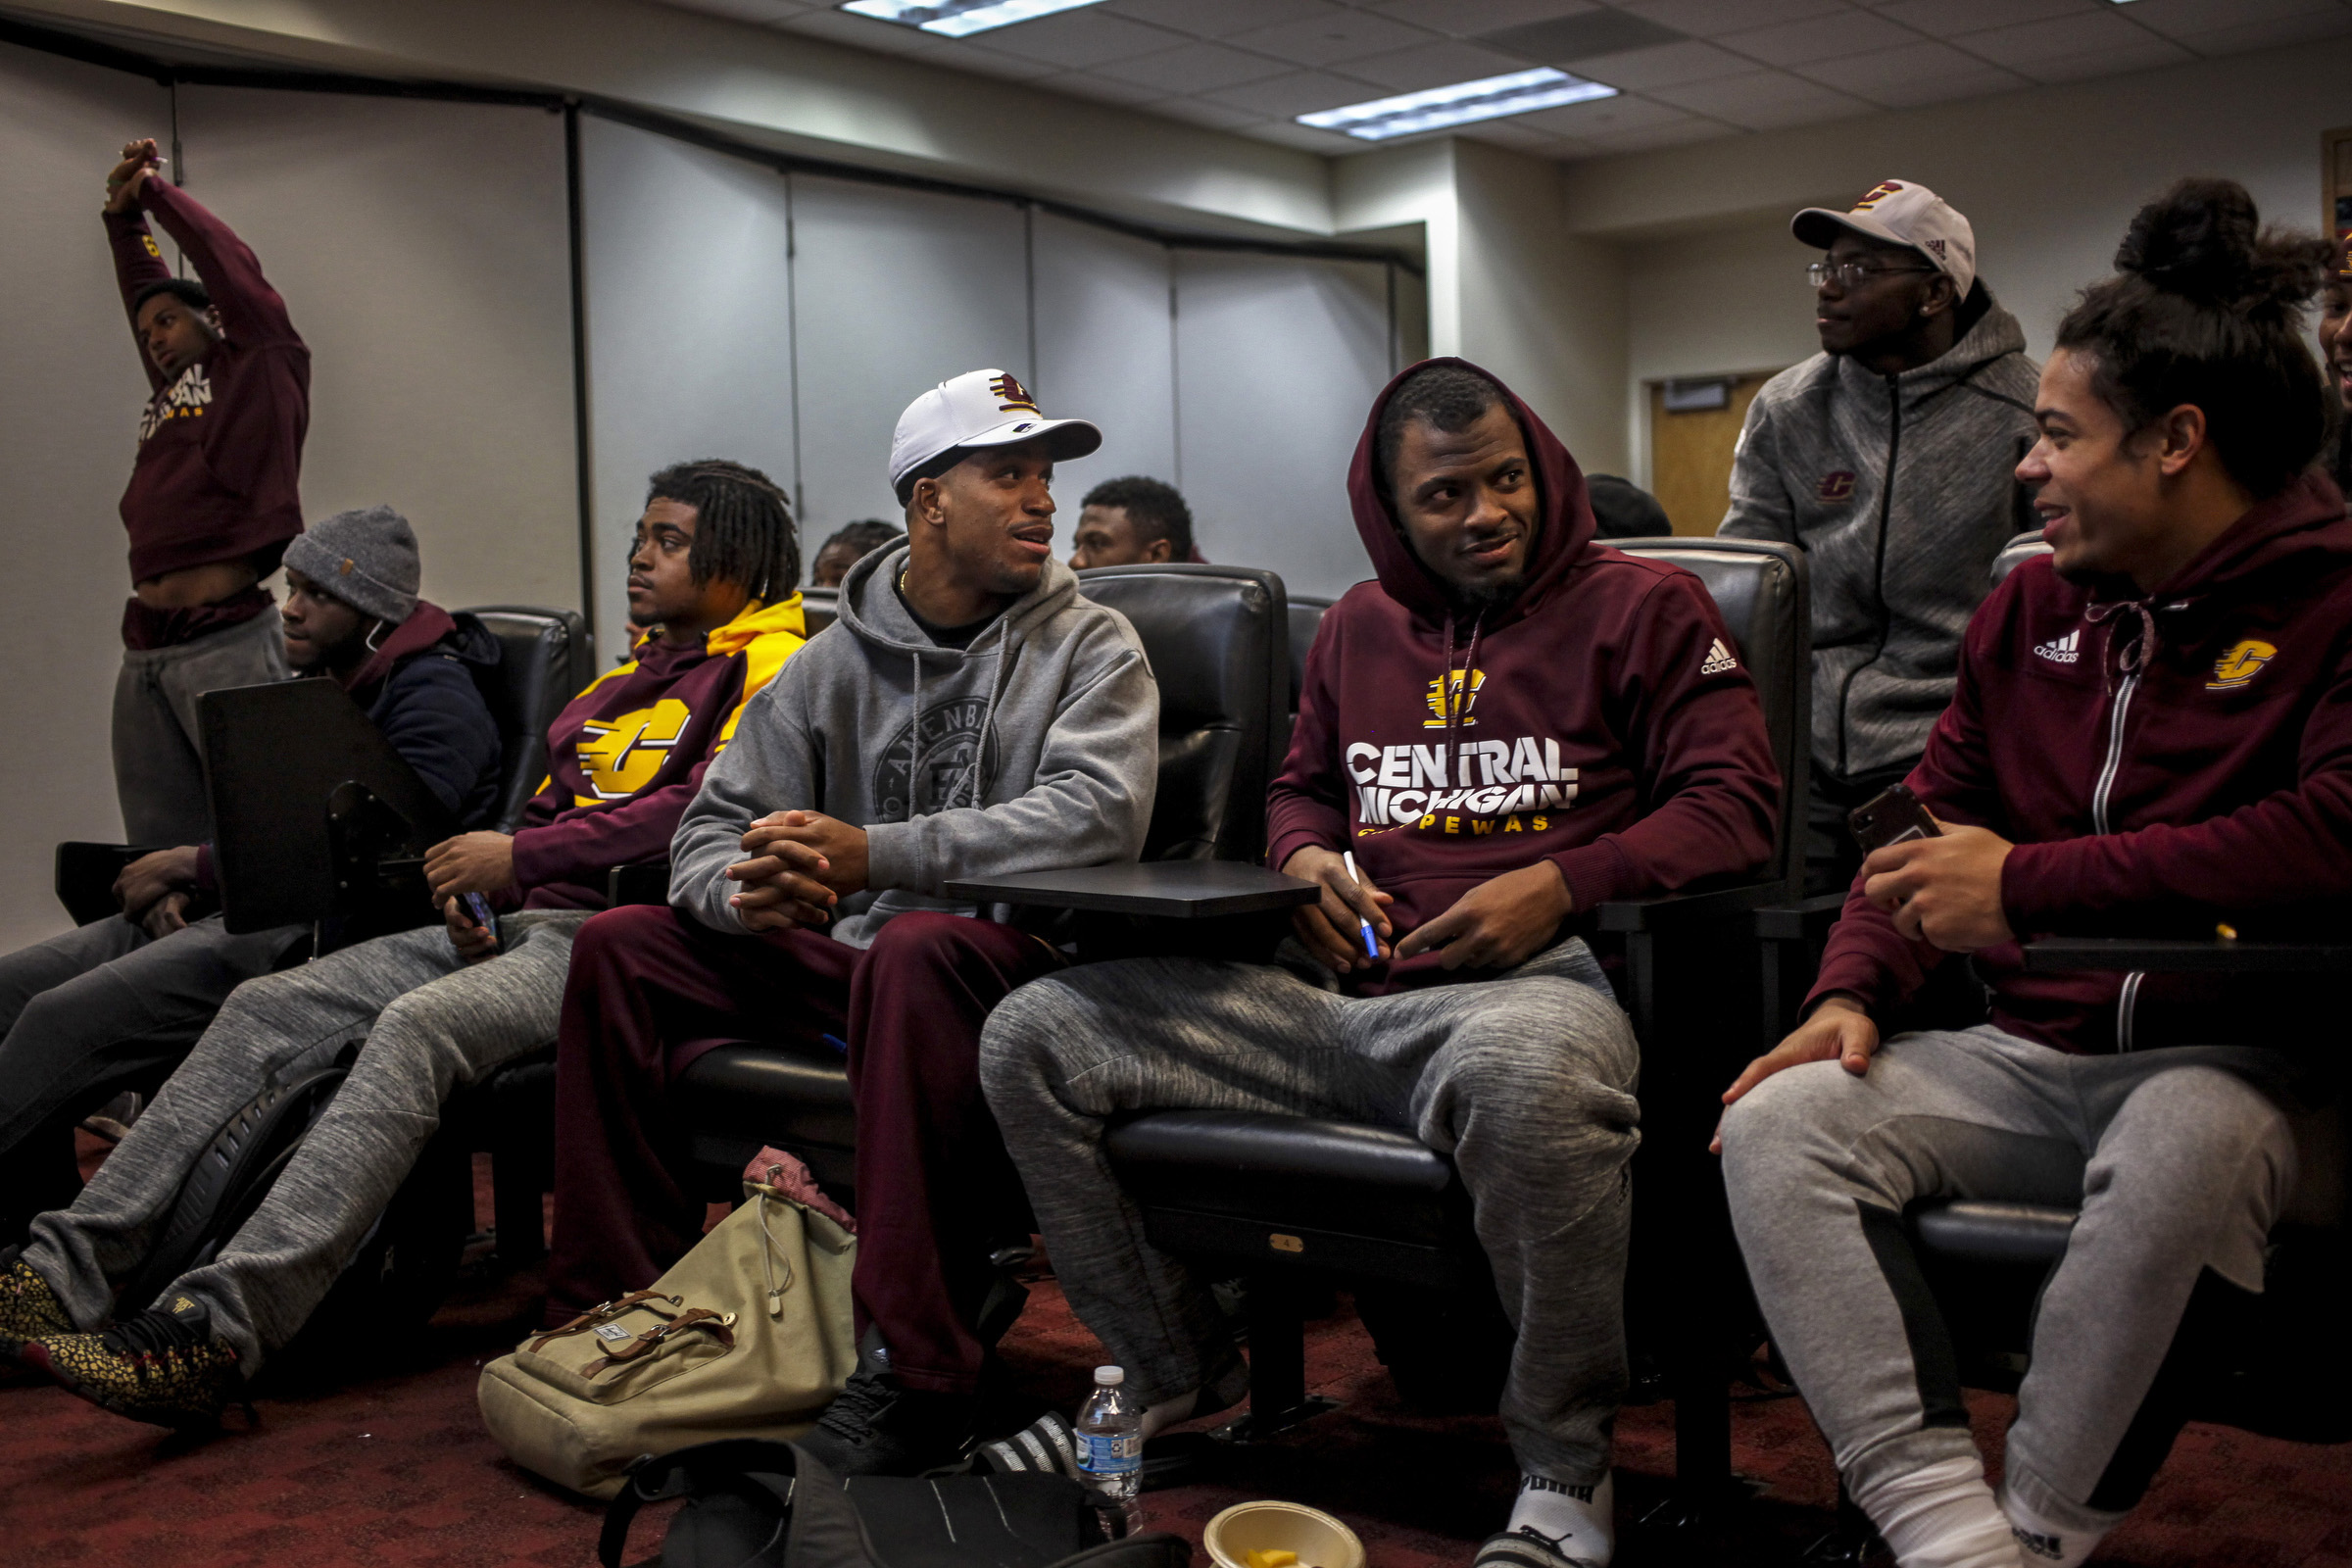 "Before an early morning practice, Ray Golden, Jr., talks with his teammates on the Central Michigan University football team. As a defensive back, Golden takes his responsibility to his team serious and refers to football as his ""job."" Because of the long hours spent with his team, the football team is a second family for Ray. (Photo: Josephine Norris/GroundTruth)"